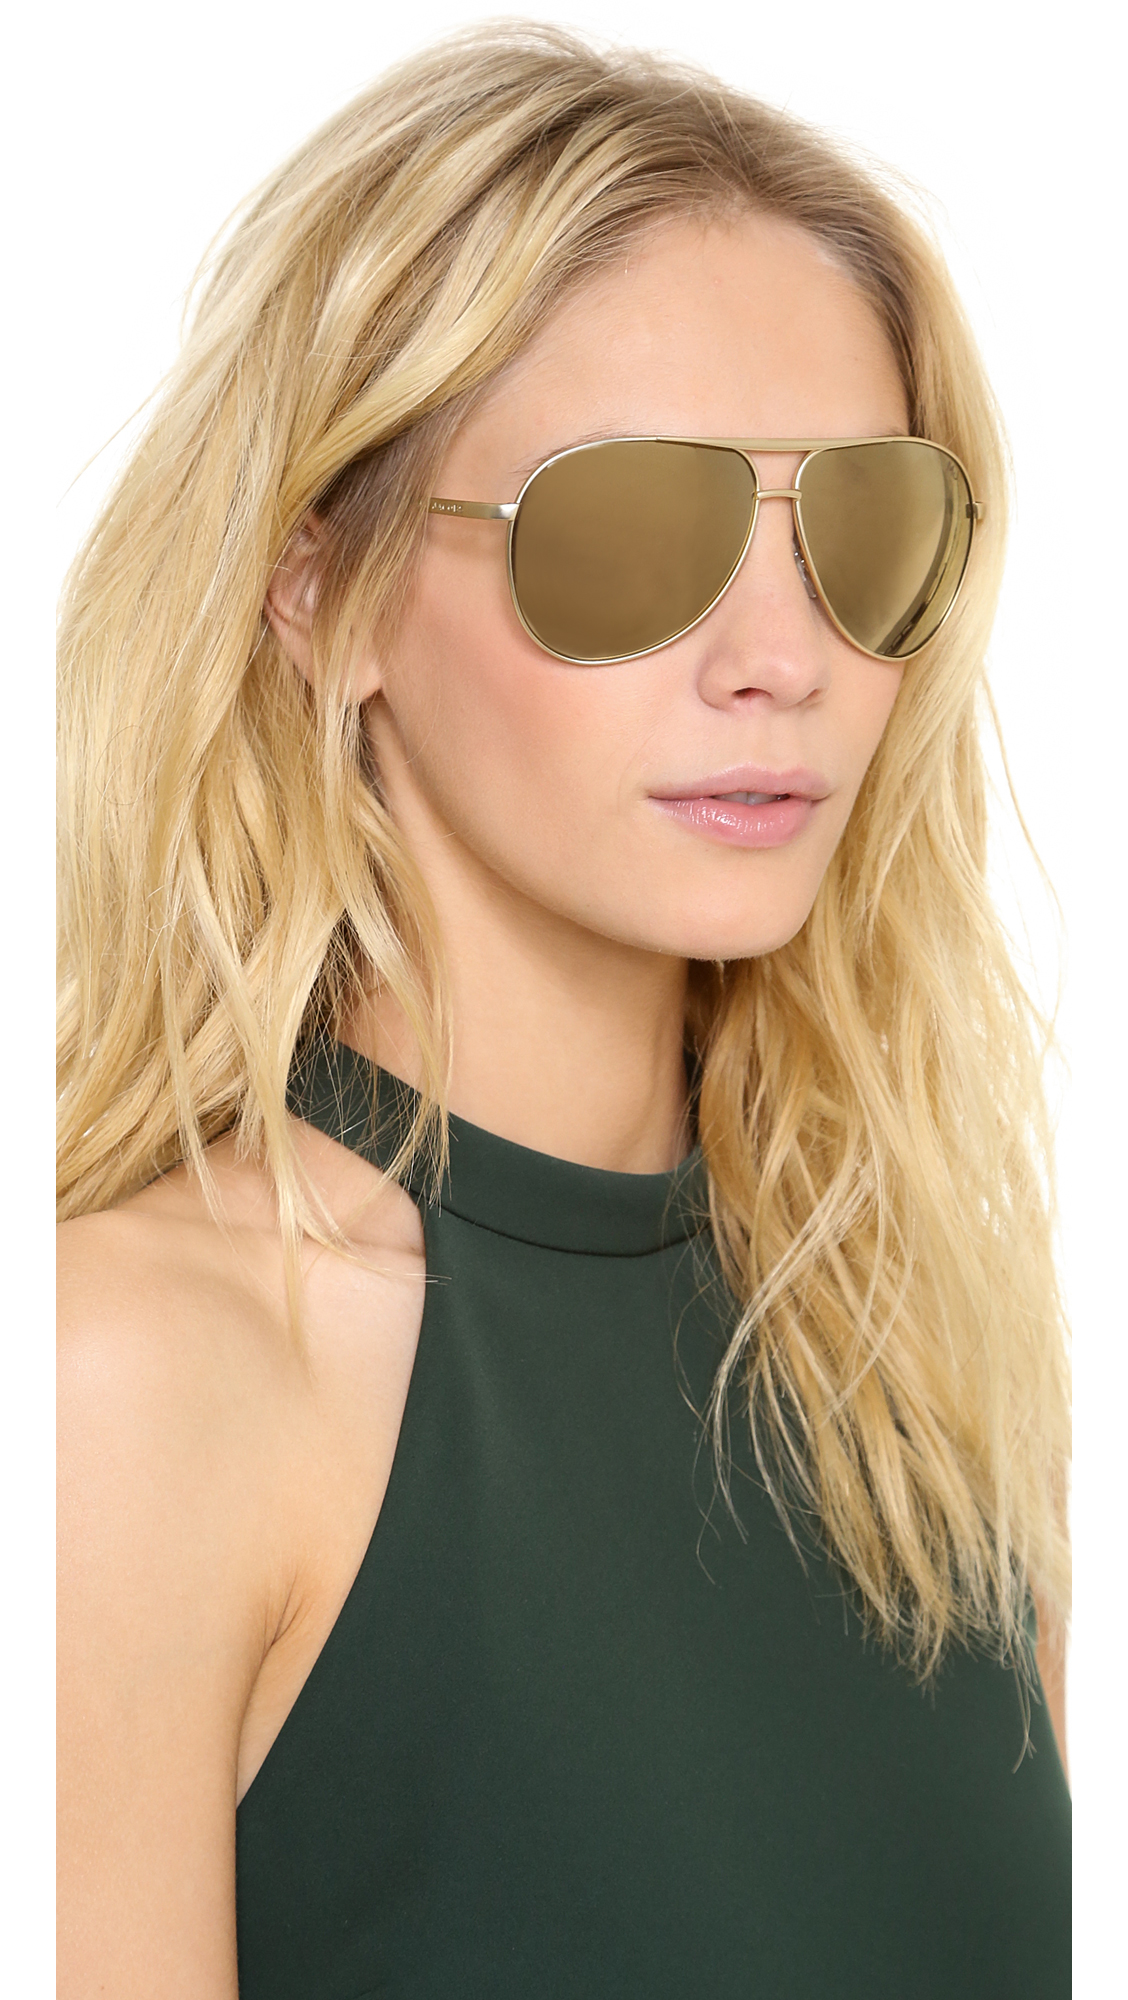 Marc Jacobs Oversized Aviator Sunglasses  marc jacobs mirrored aviator sunglasses in metallic lyst